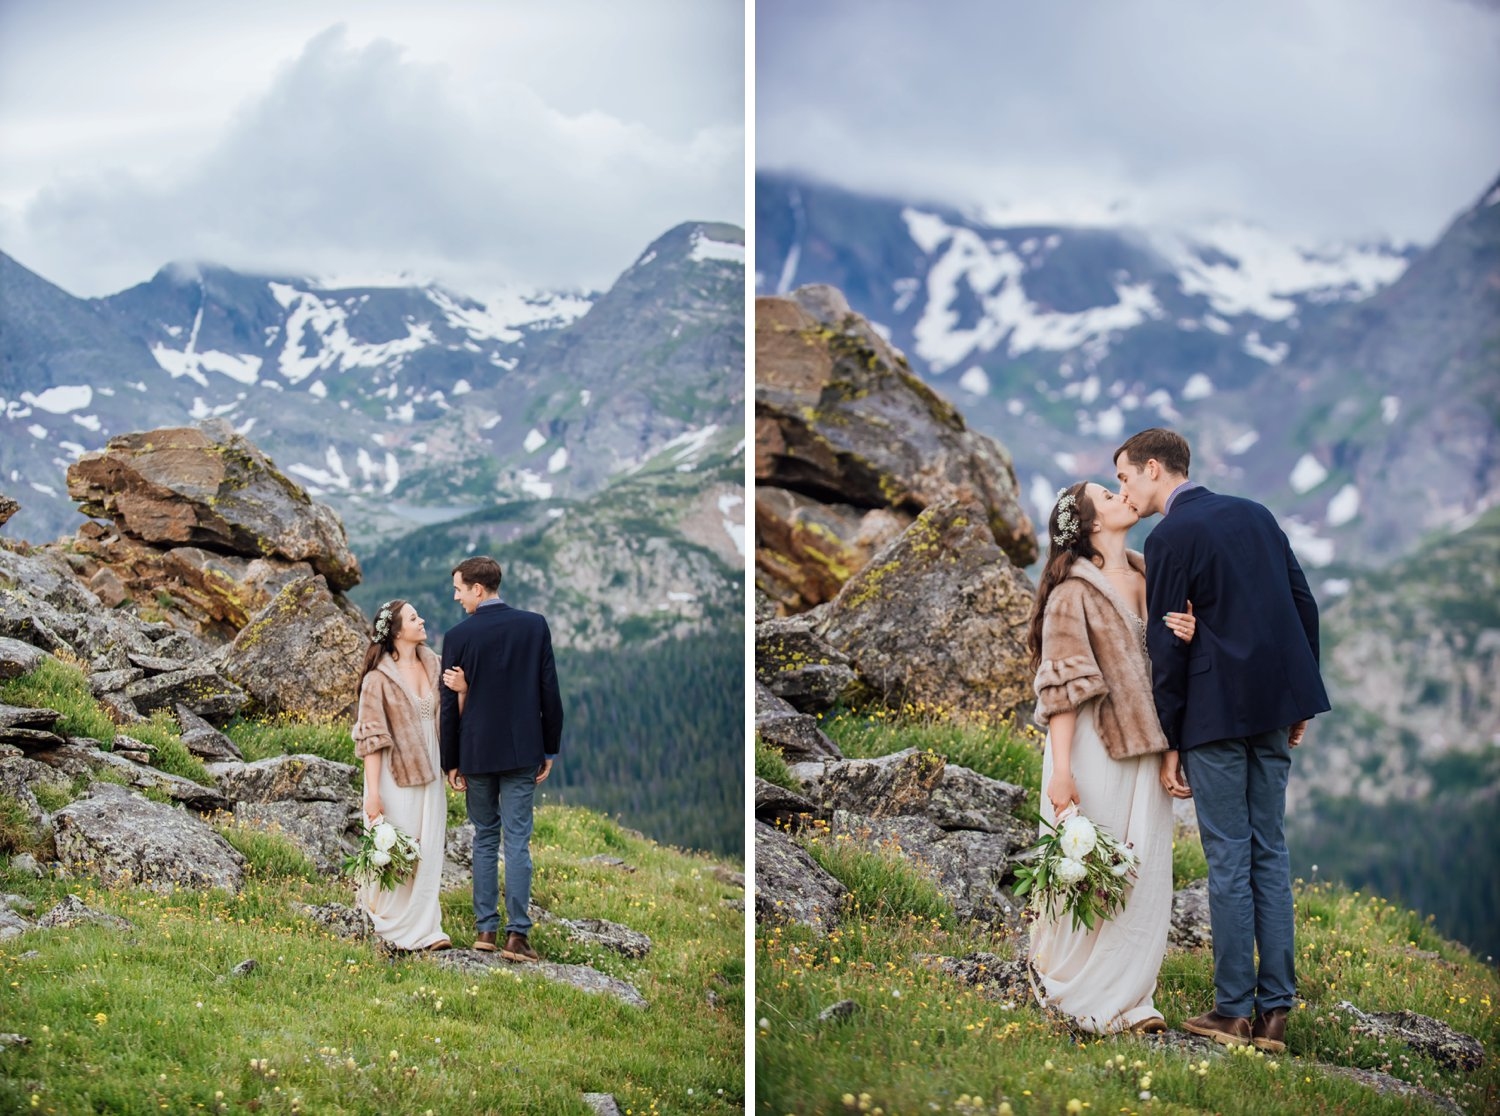 The giant rocks and the snowy mountains are the best backdrop for this colder, spring mountain wedding. Photo by Maddie Mae Photography